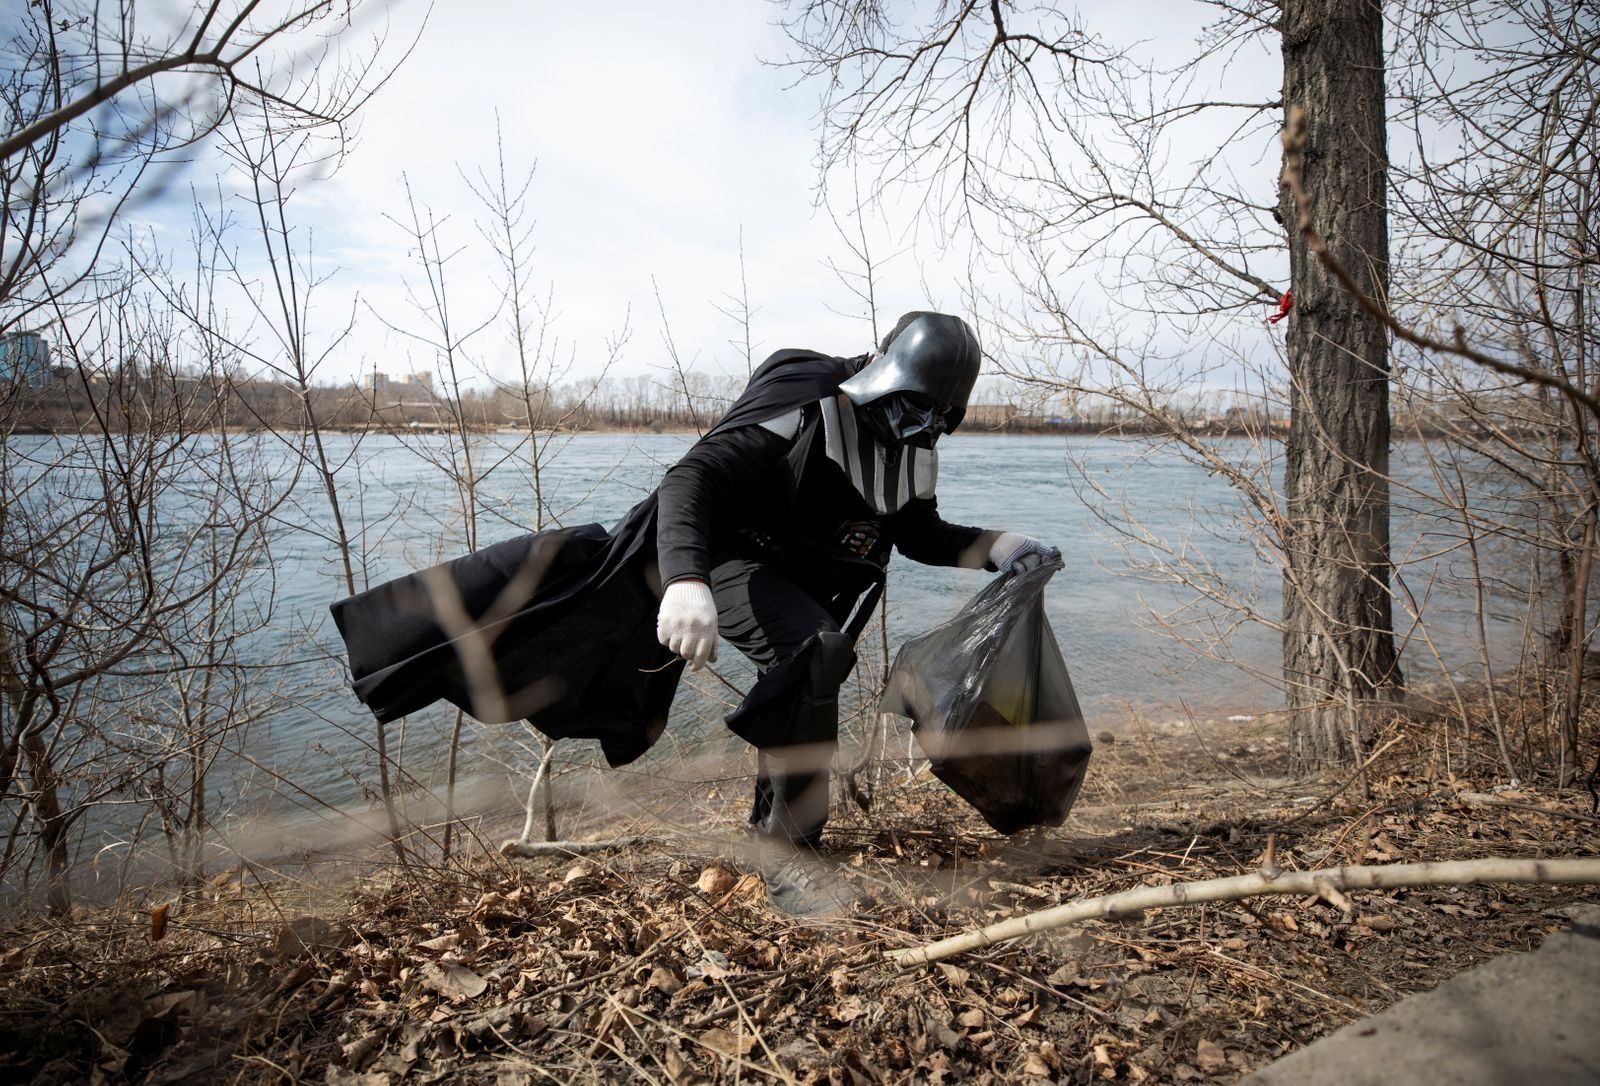 A volunteer dressed as the Star Wars character Darth Vader picks up trash during a street cleaning event in Irkutsk